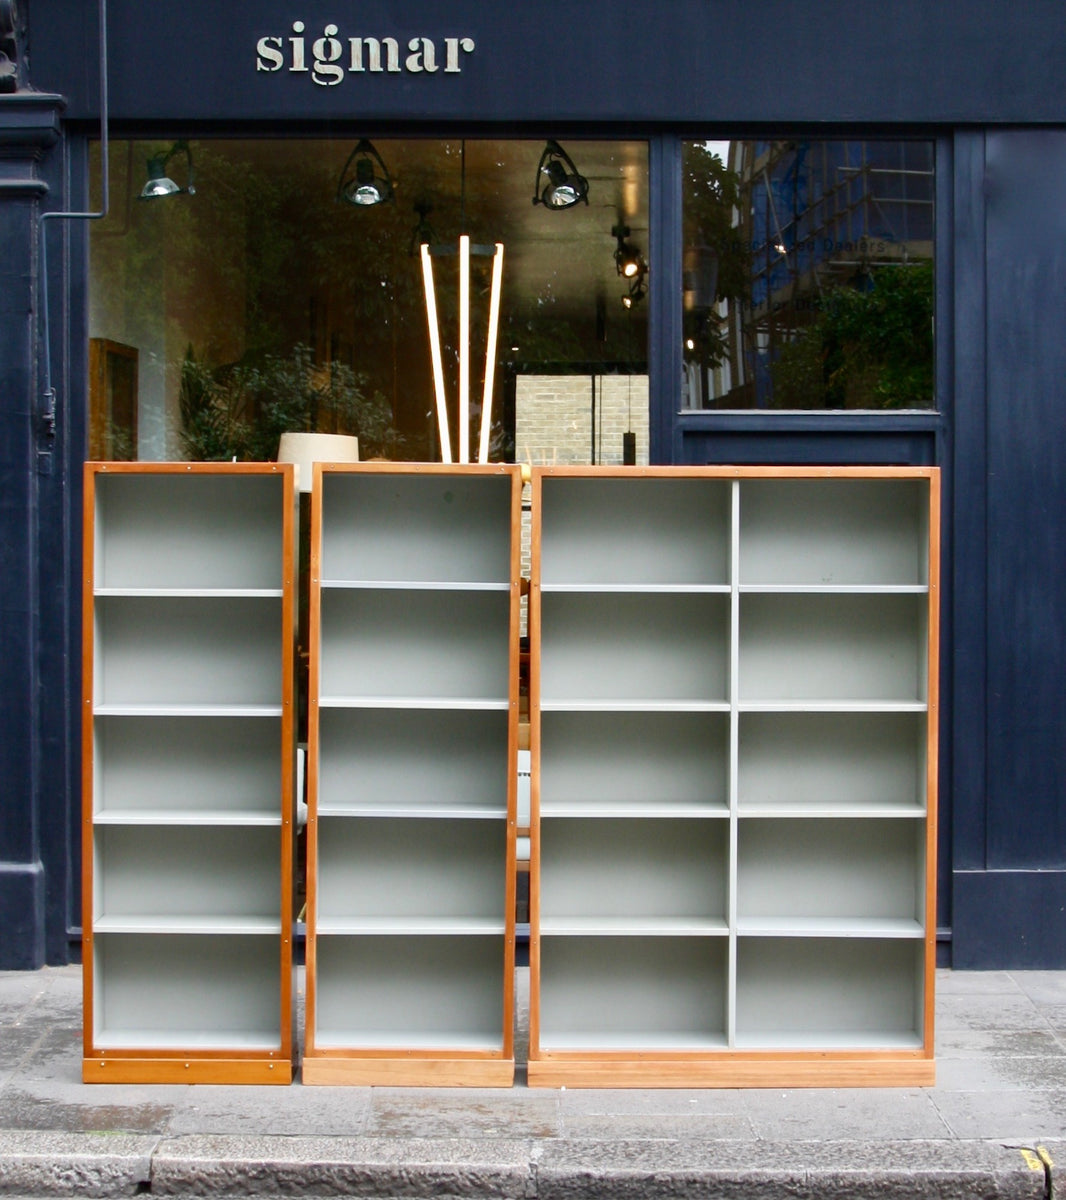 Narrow Bookcase #2 Børge Mogensen & Grete Meyer - kings road image Quality Danish Modern Beautiful Handmade Danish Design Architect Designed Simple Built for the future Storage original